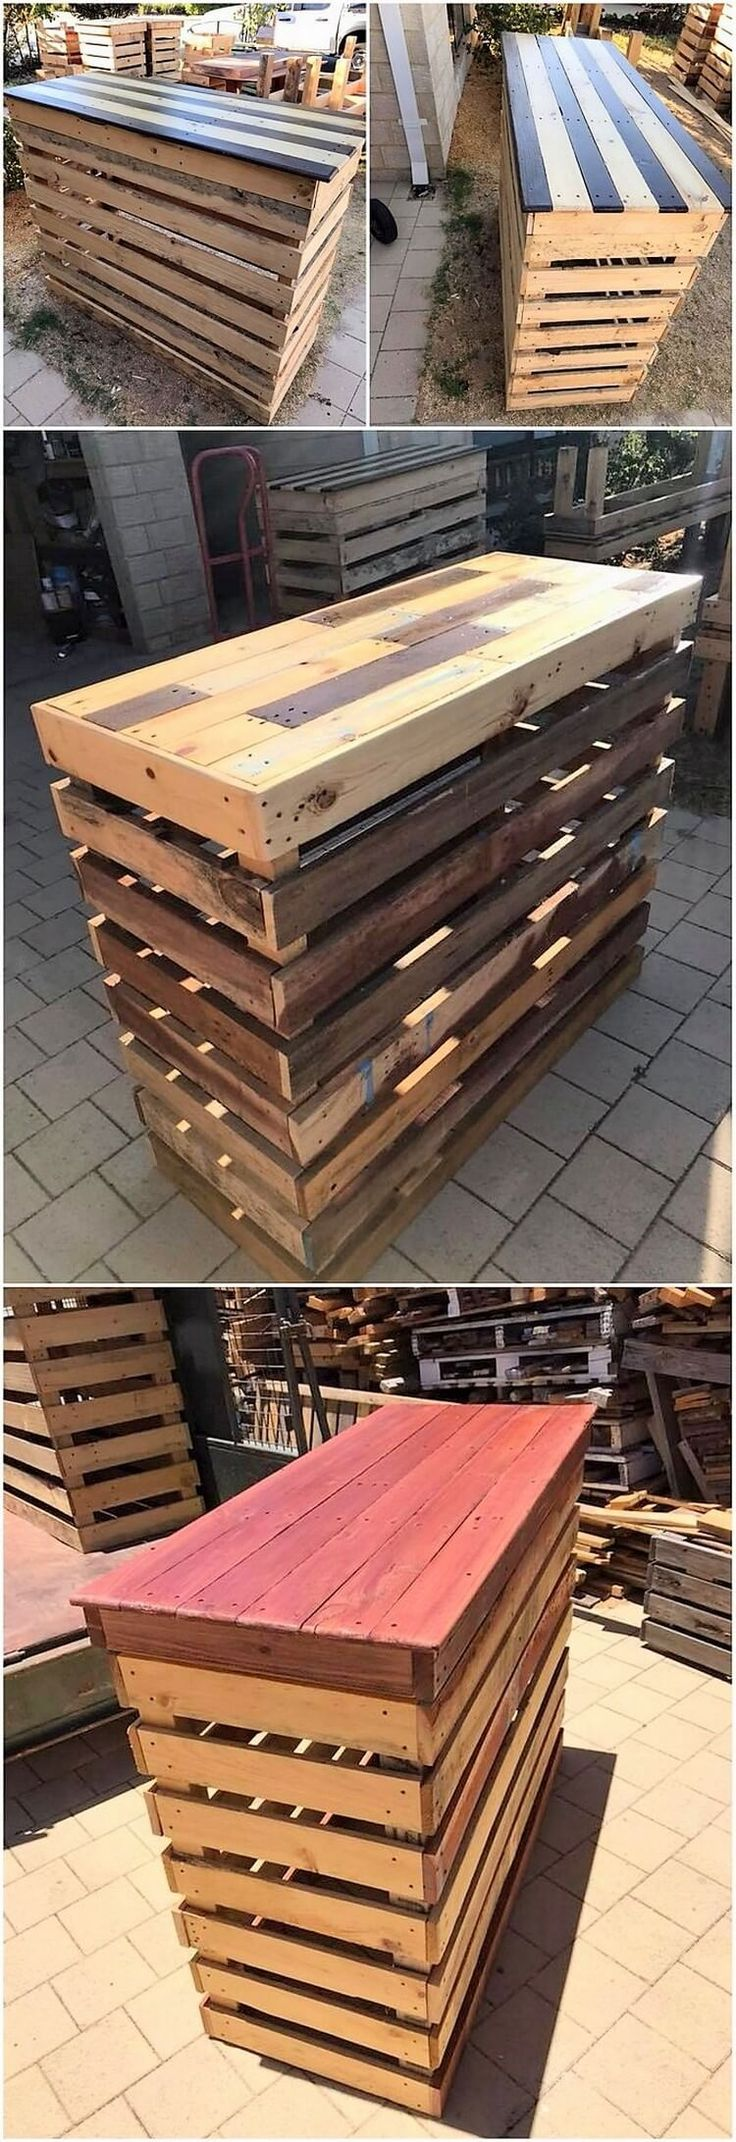 Having a suitable and yet simple creation of wood pallet do comes out to be one of the most cheapest idea of the wood pallet creations. It is a simple planks of wood pallet counter table that is all set up with the neat clean effect of the designing work being part of it.